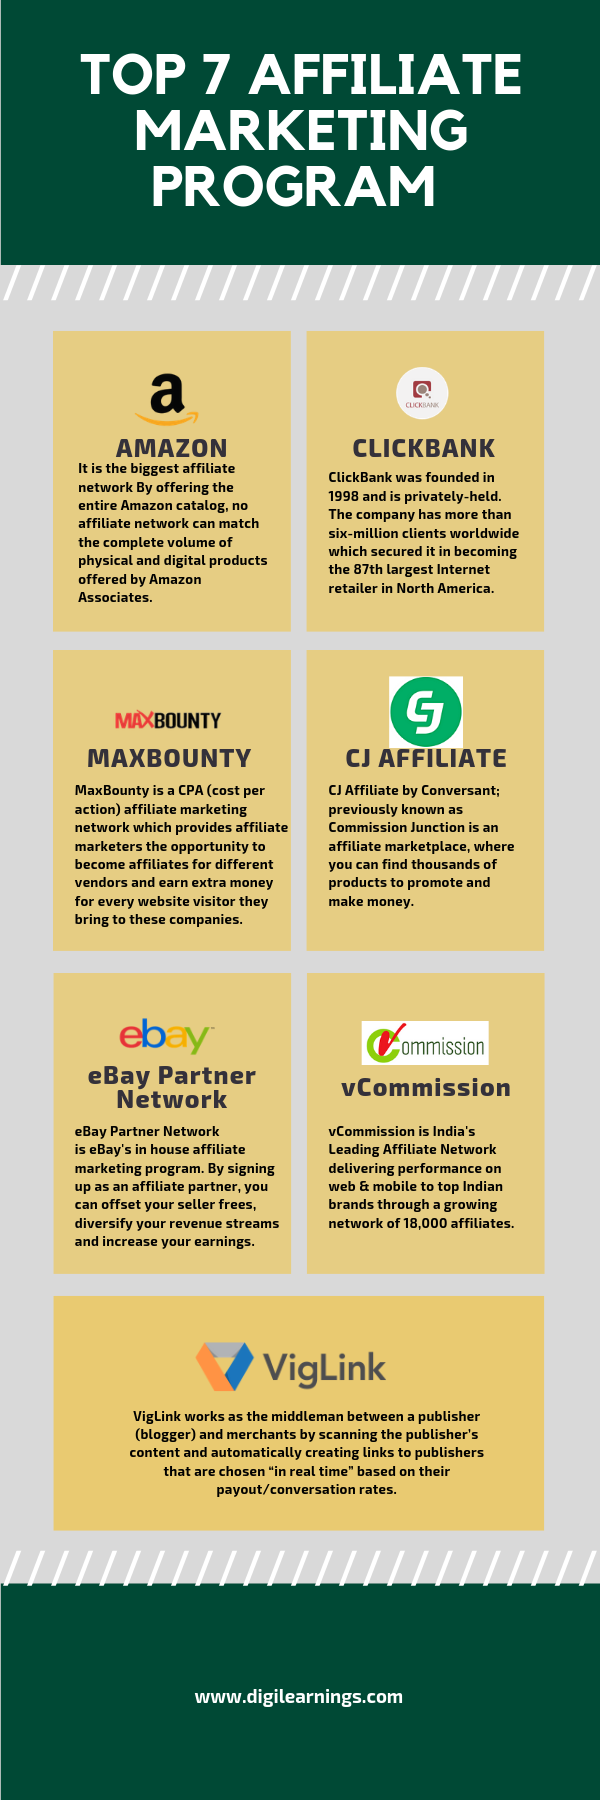 List of acquisitions by eBay - Wikipedia